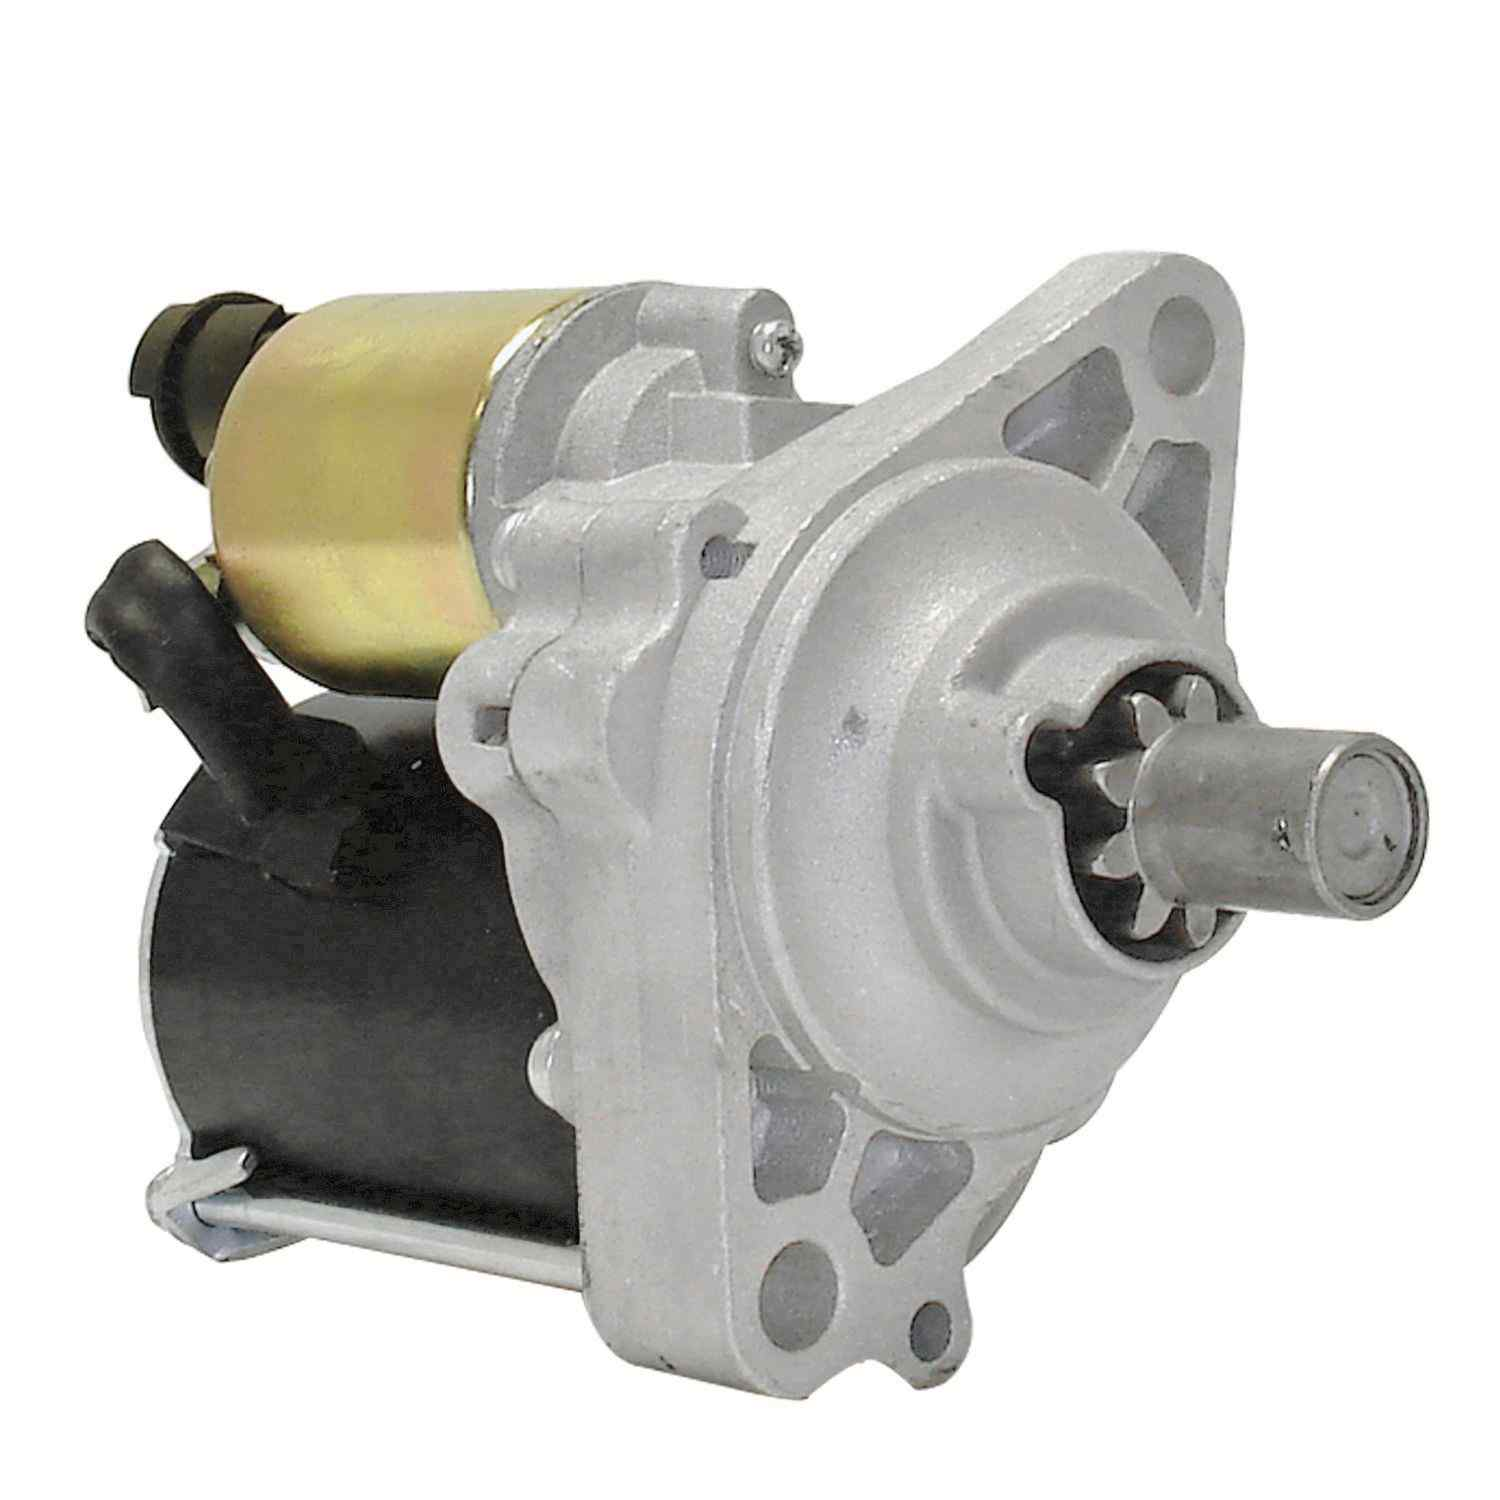 ACDELCO GOLD/PROFESSIONAL - Reman Starter Motor - DCC 336-1671A